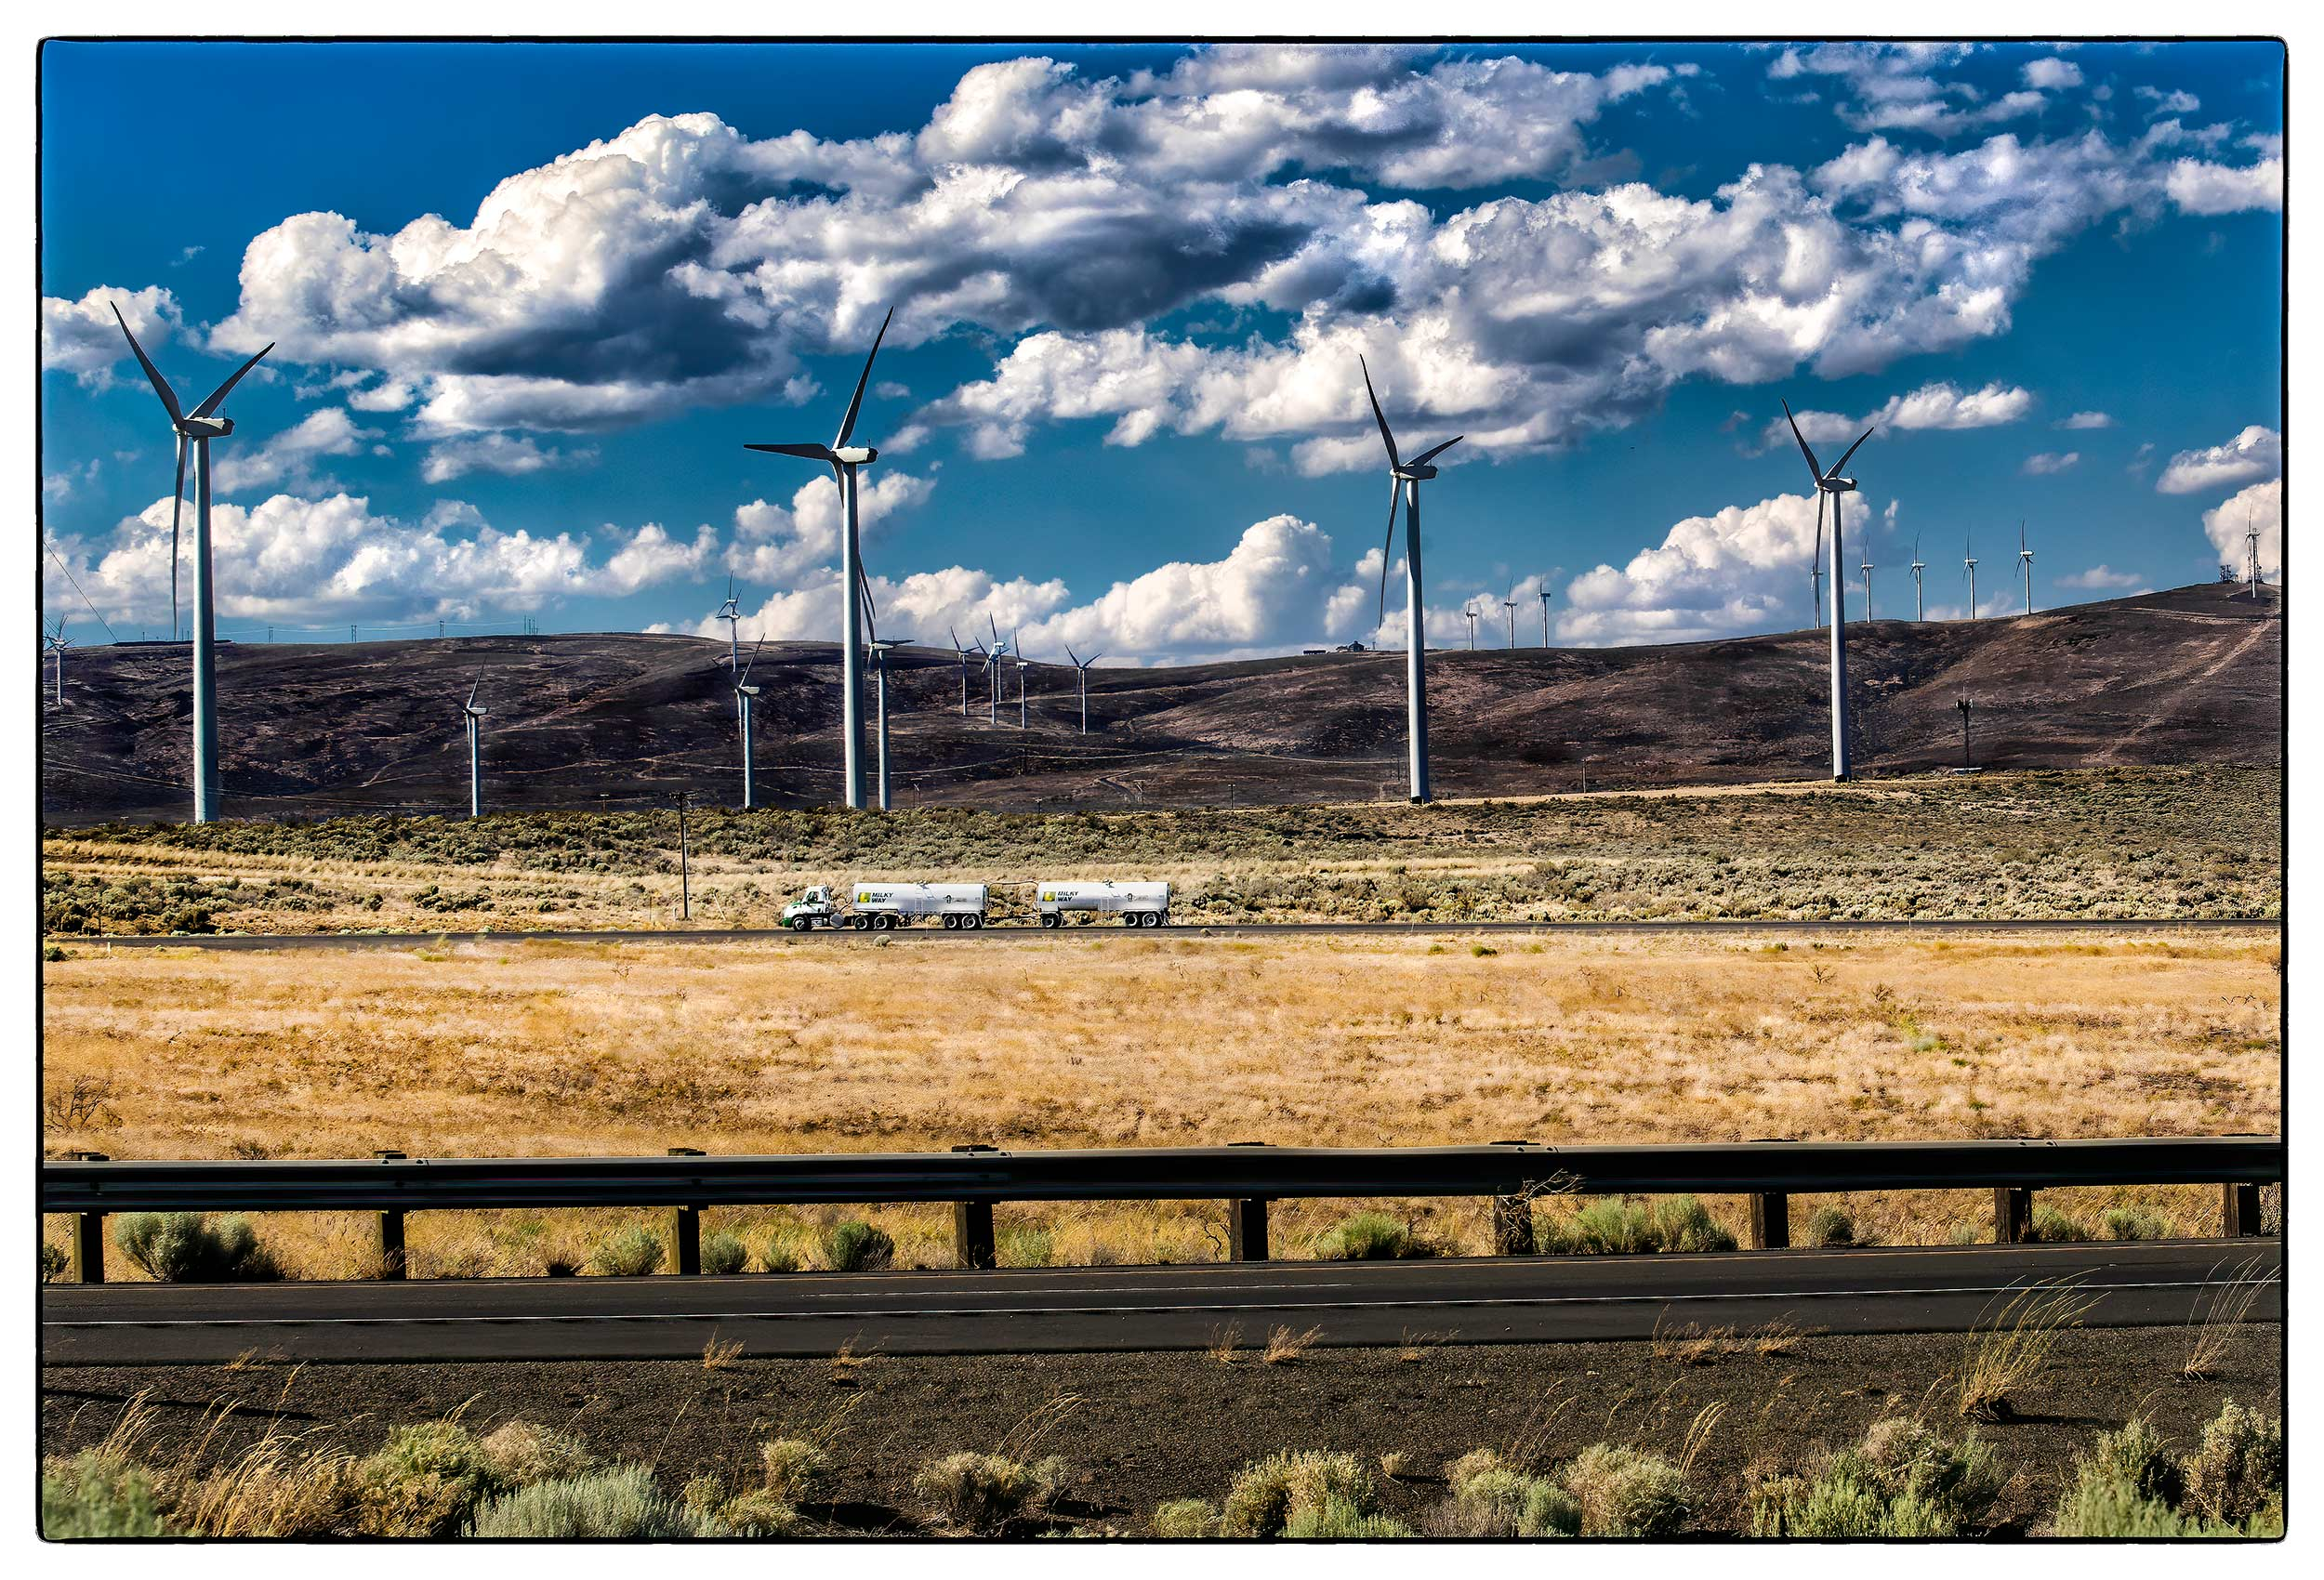 a-millky-way-truck-drives-past-puget-sound-engerys-wind-turbine-farm-in-rural-kittitas-county-washington-state